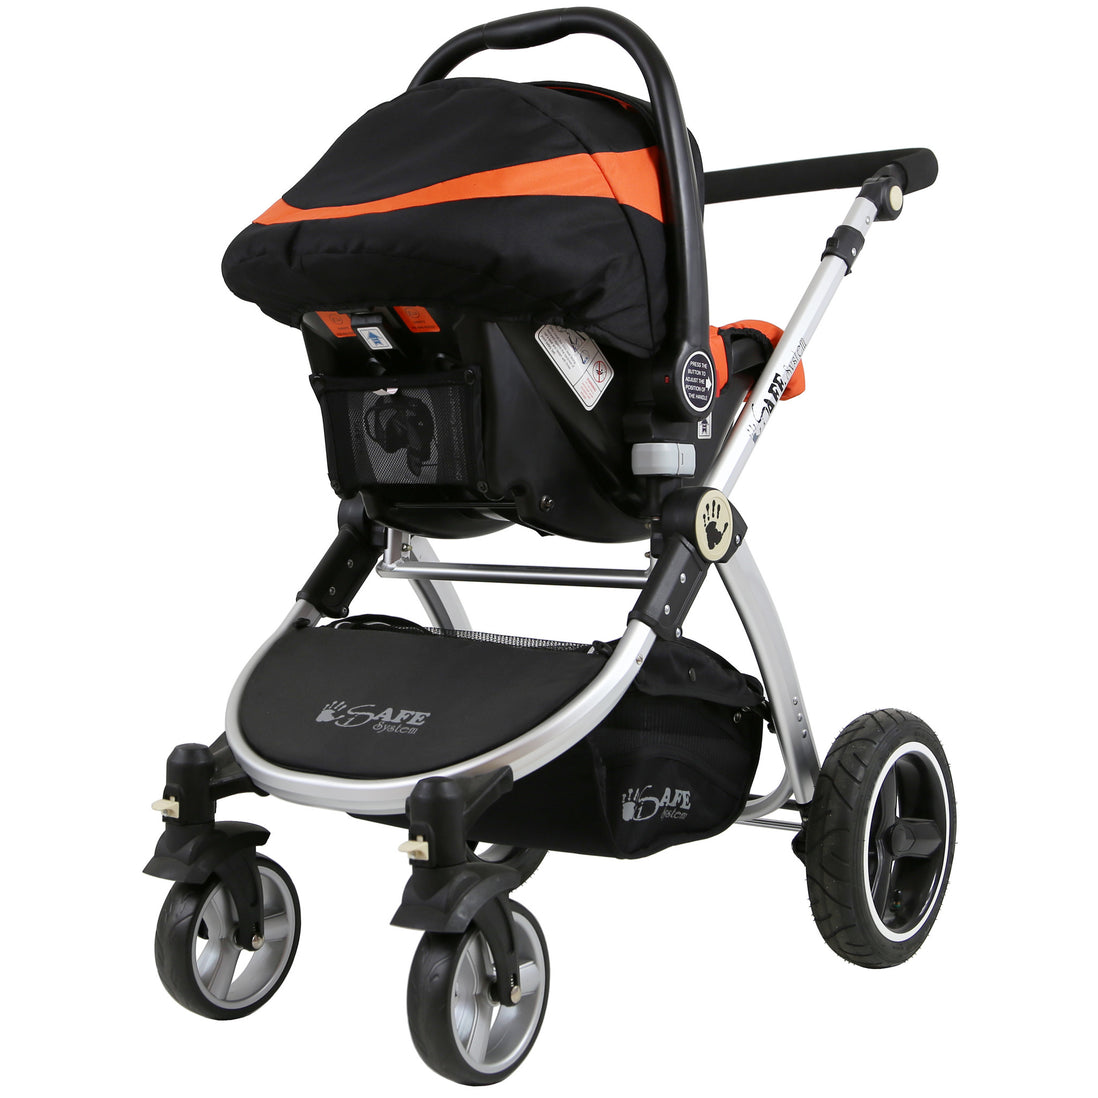 iSafe Baby Pram System 2 in 1 Complete Orange Complete With Raincover